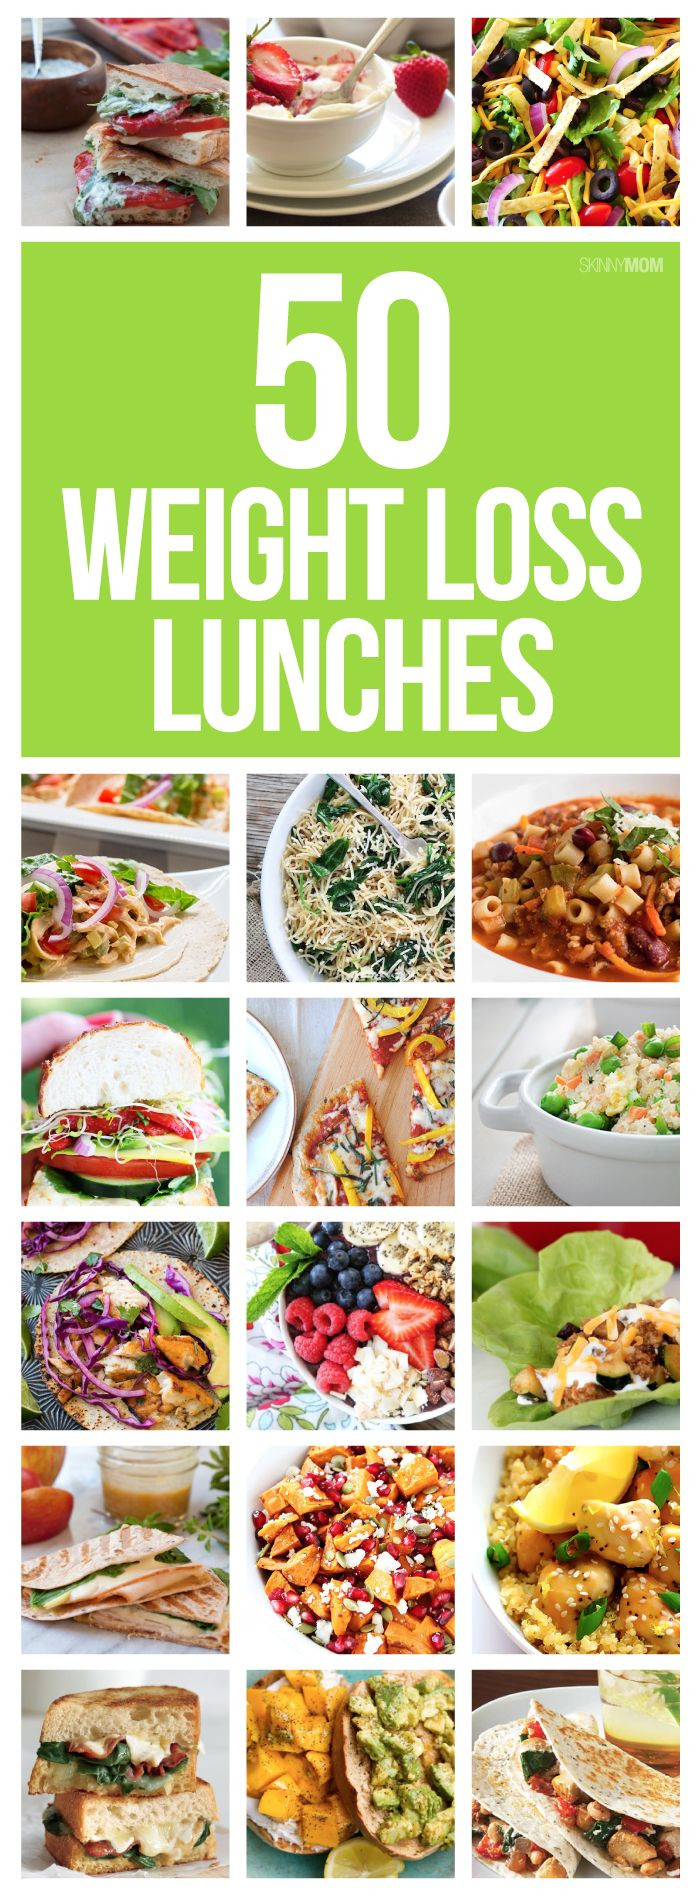 Healthy Salads For Lunch To Lose Weight  Nosh on 50 Healthy Lunches That ll Help You Lose Weight